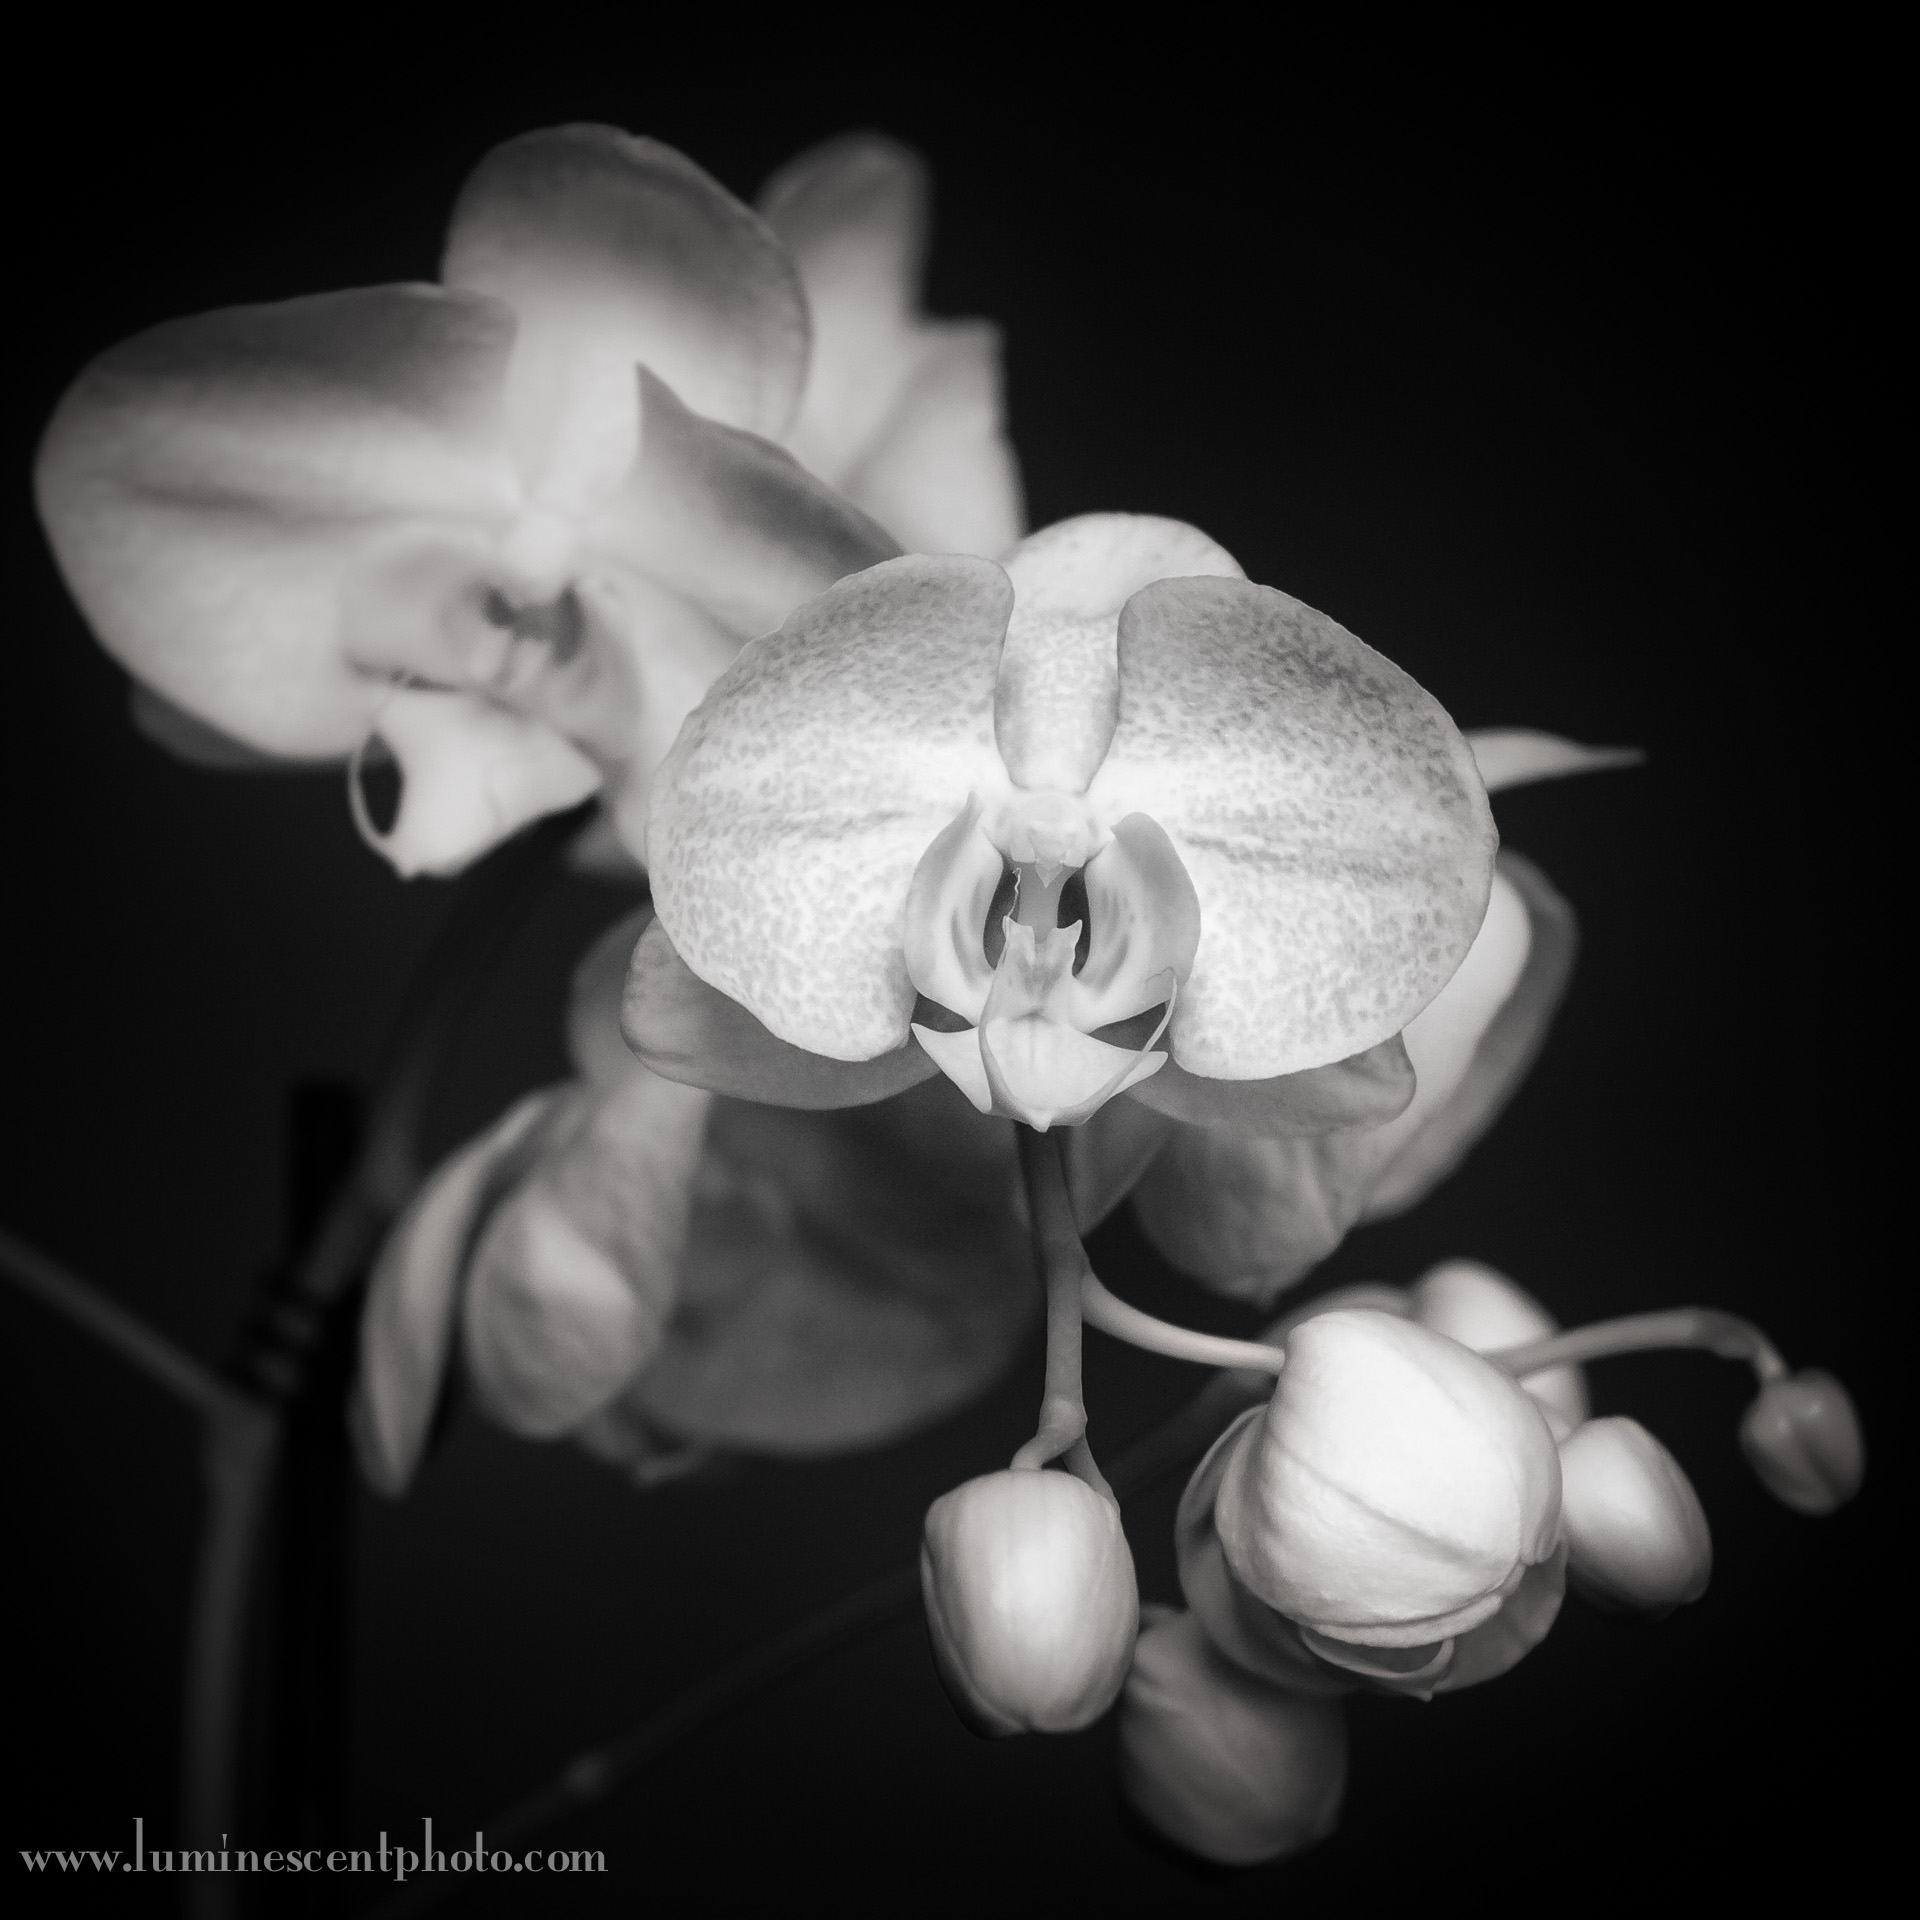 Orchid captured in infrared with a converted Nikon 1 V1 and 32mm f/1.2 1-Nikkor lens.